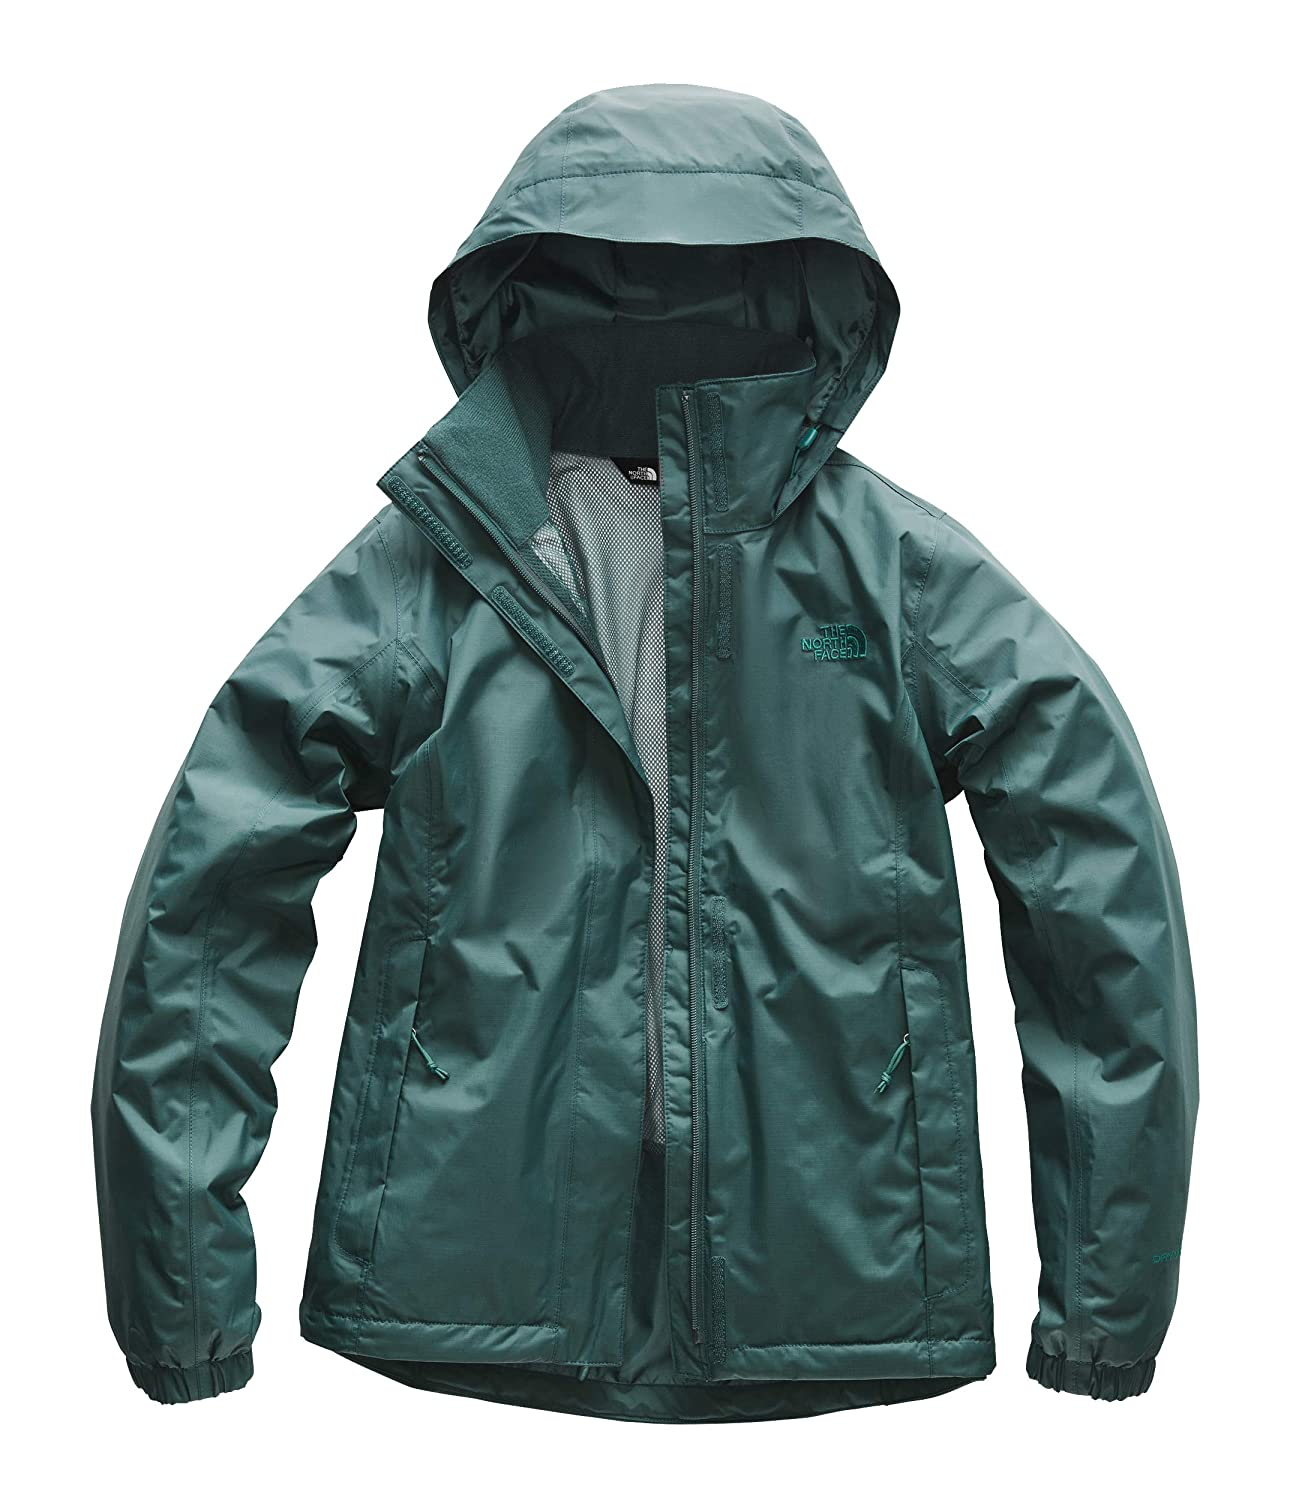 0db01c1b7 The North Face Women's Resolve 2 Jacket